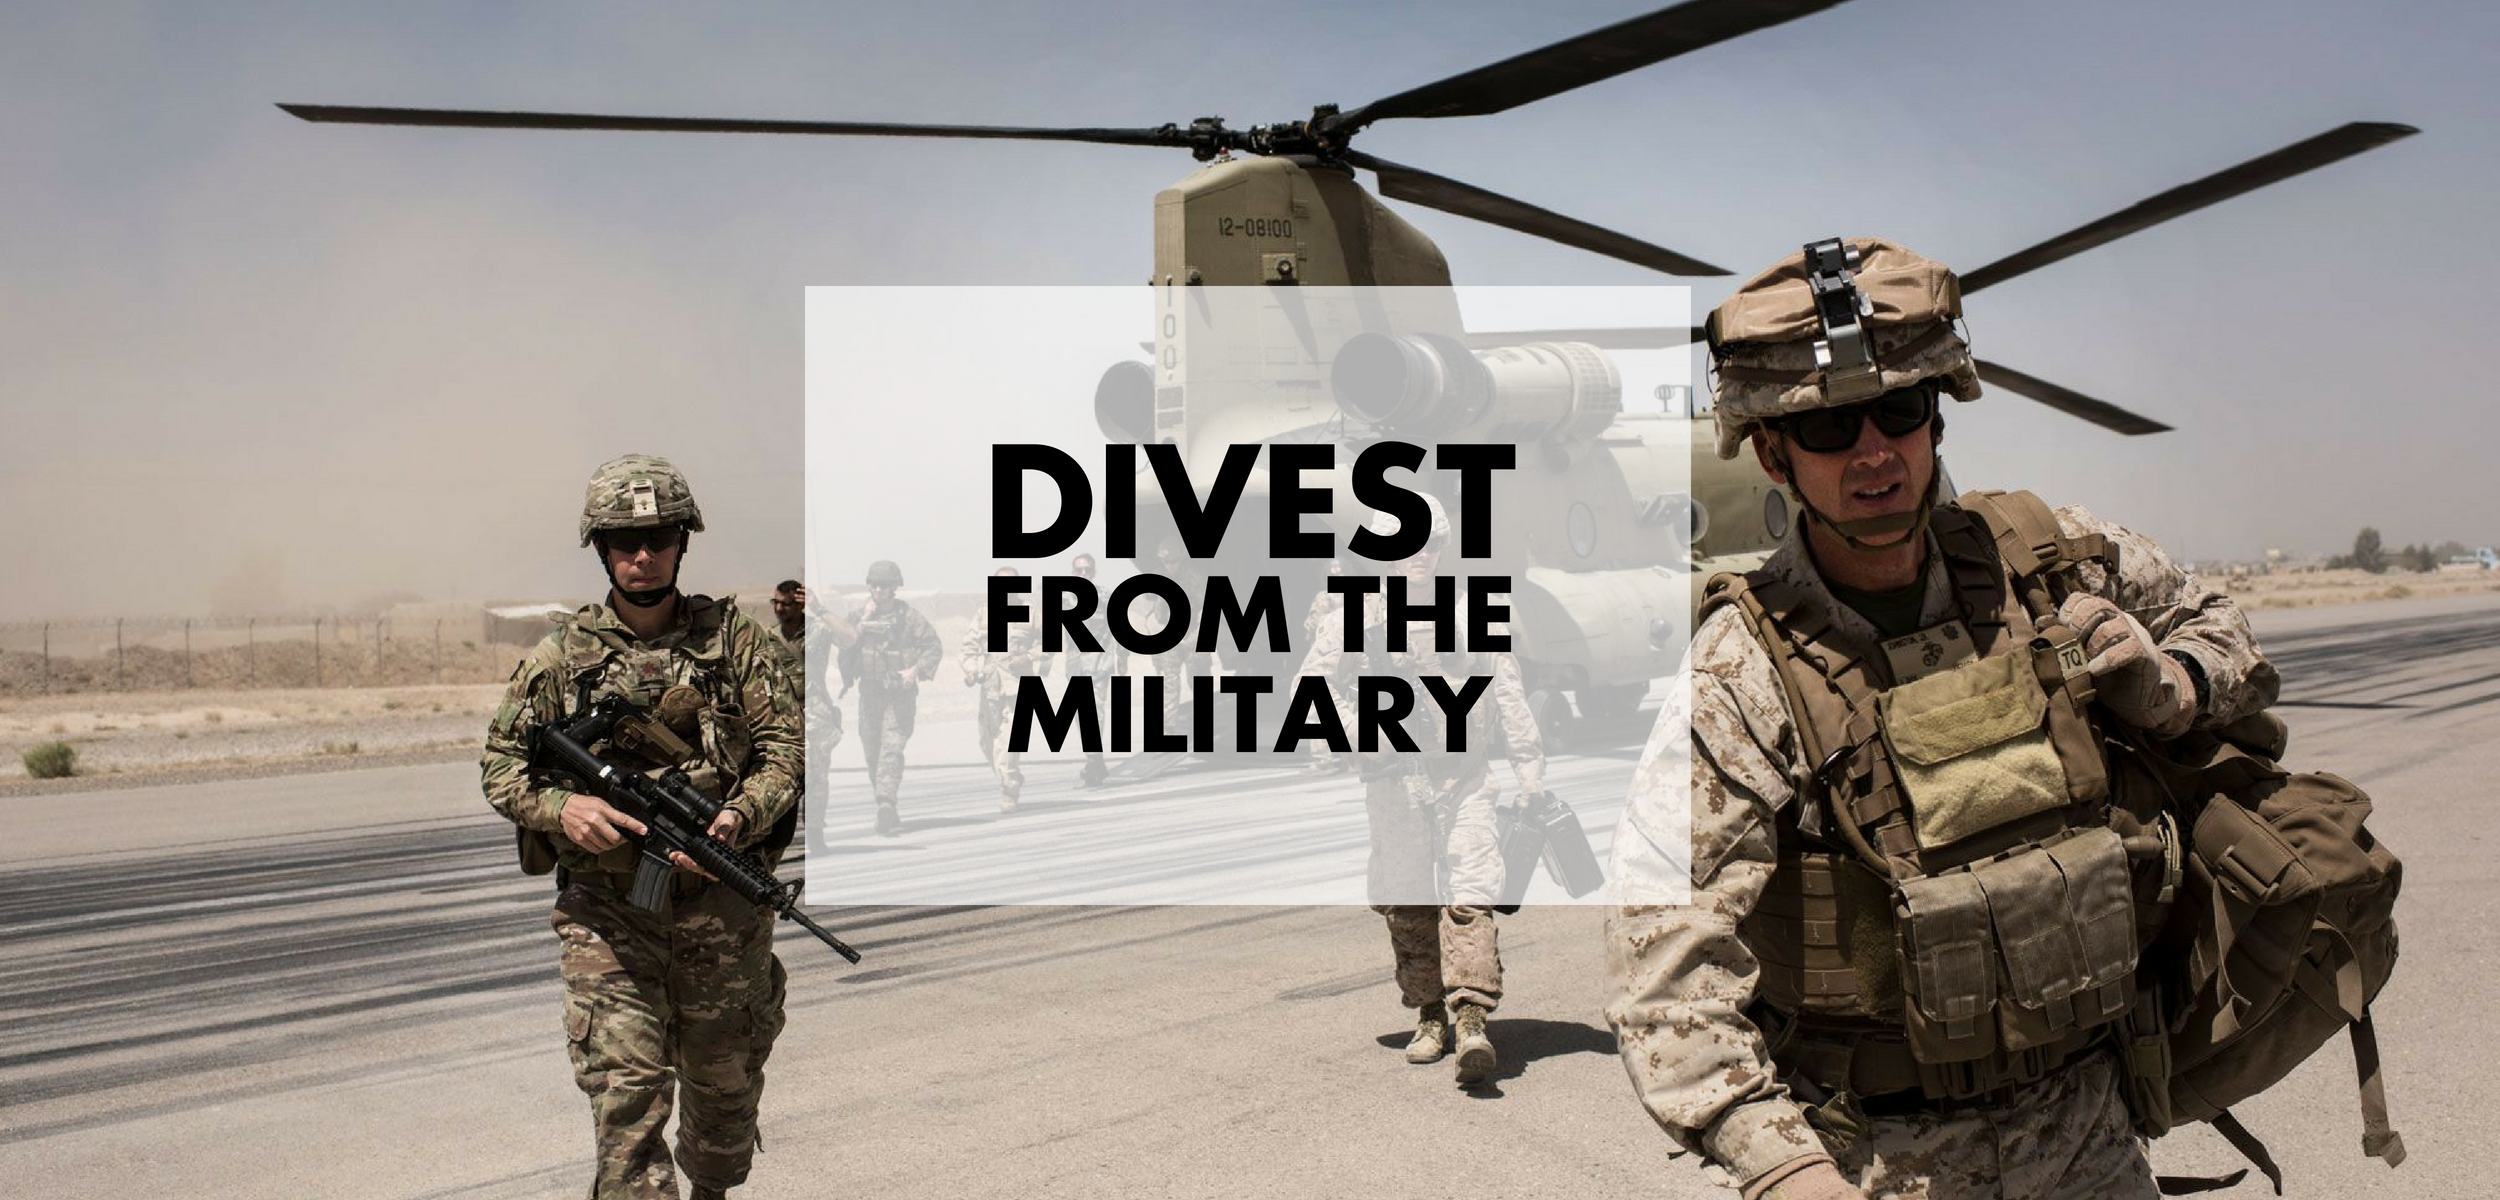 Divest from the Military